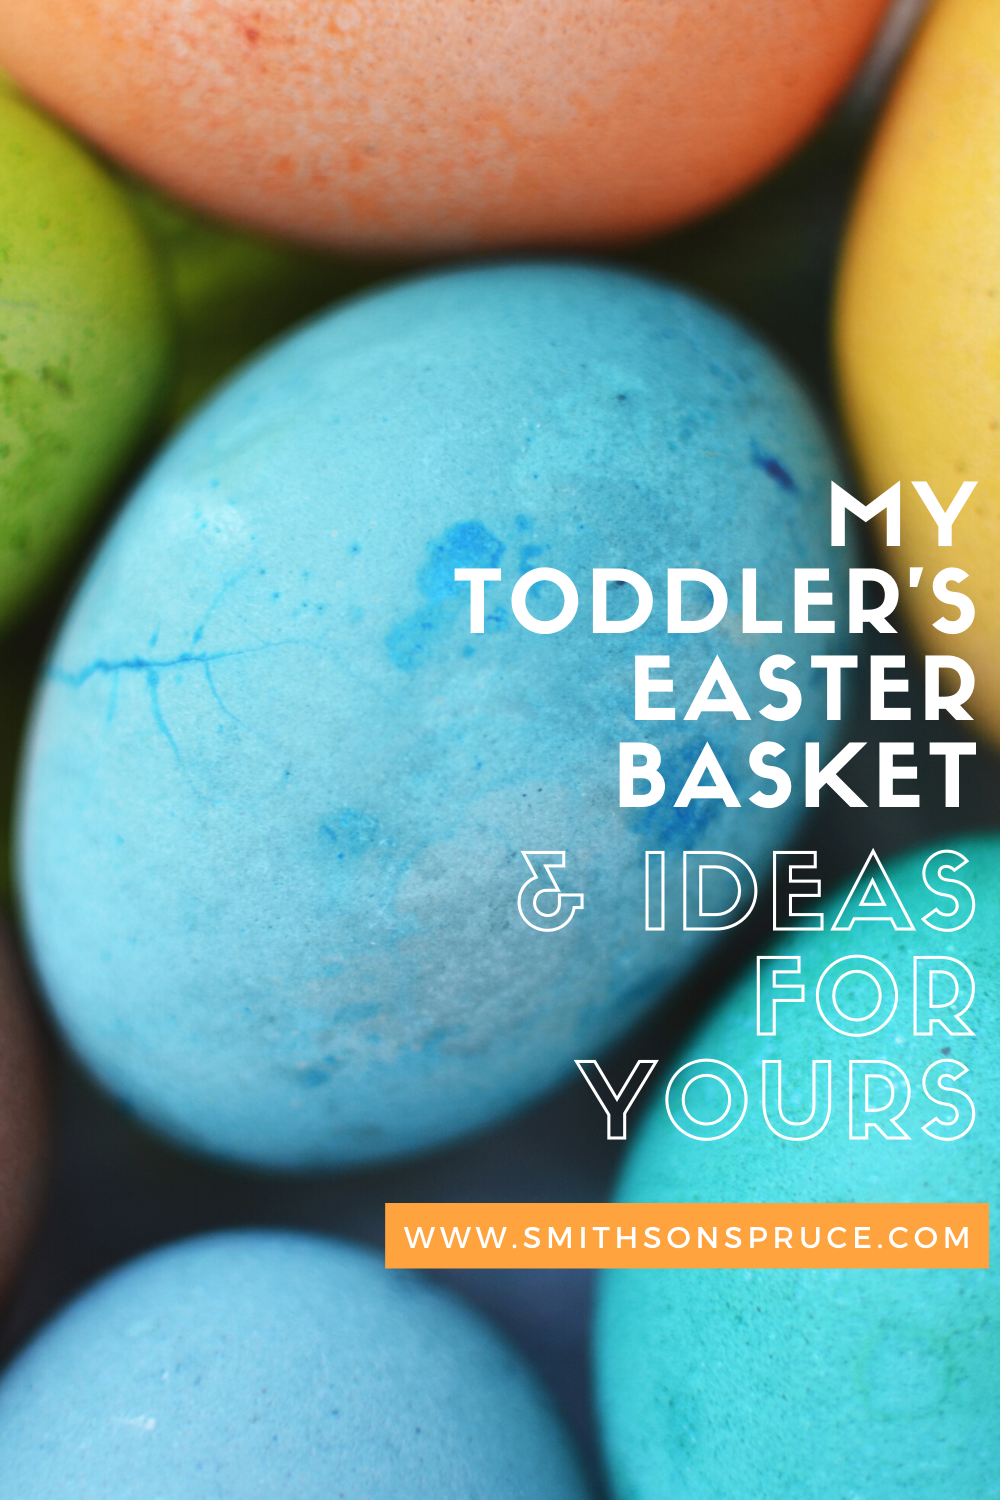 My Toddler's Easter Basket & Ideas For Yours!